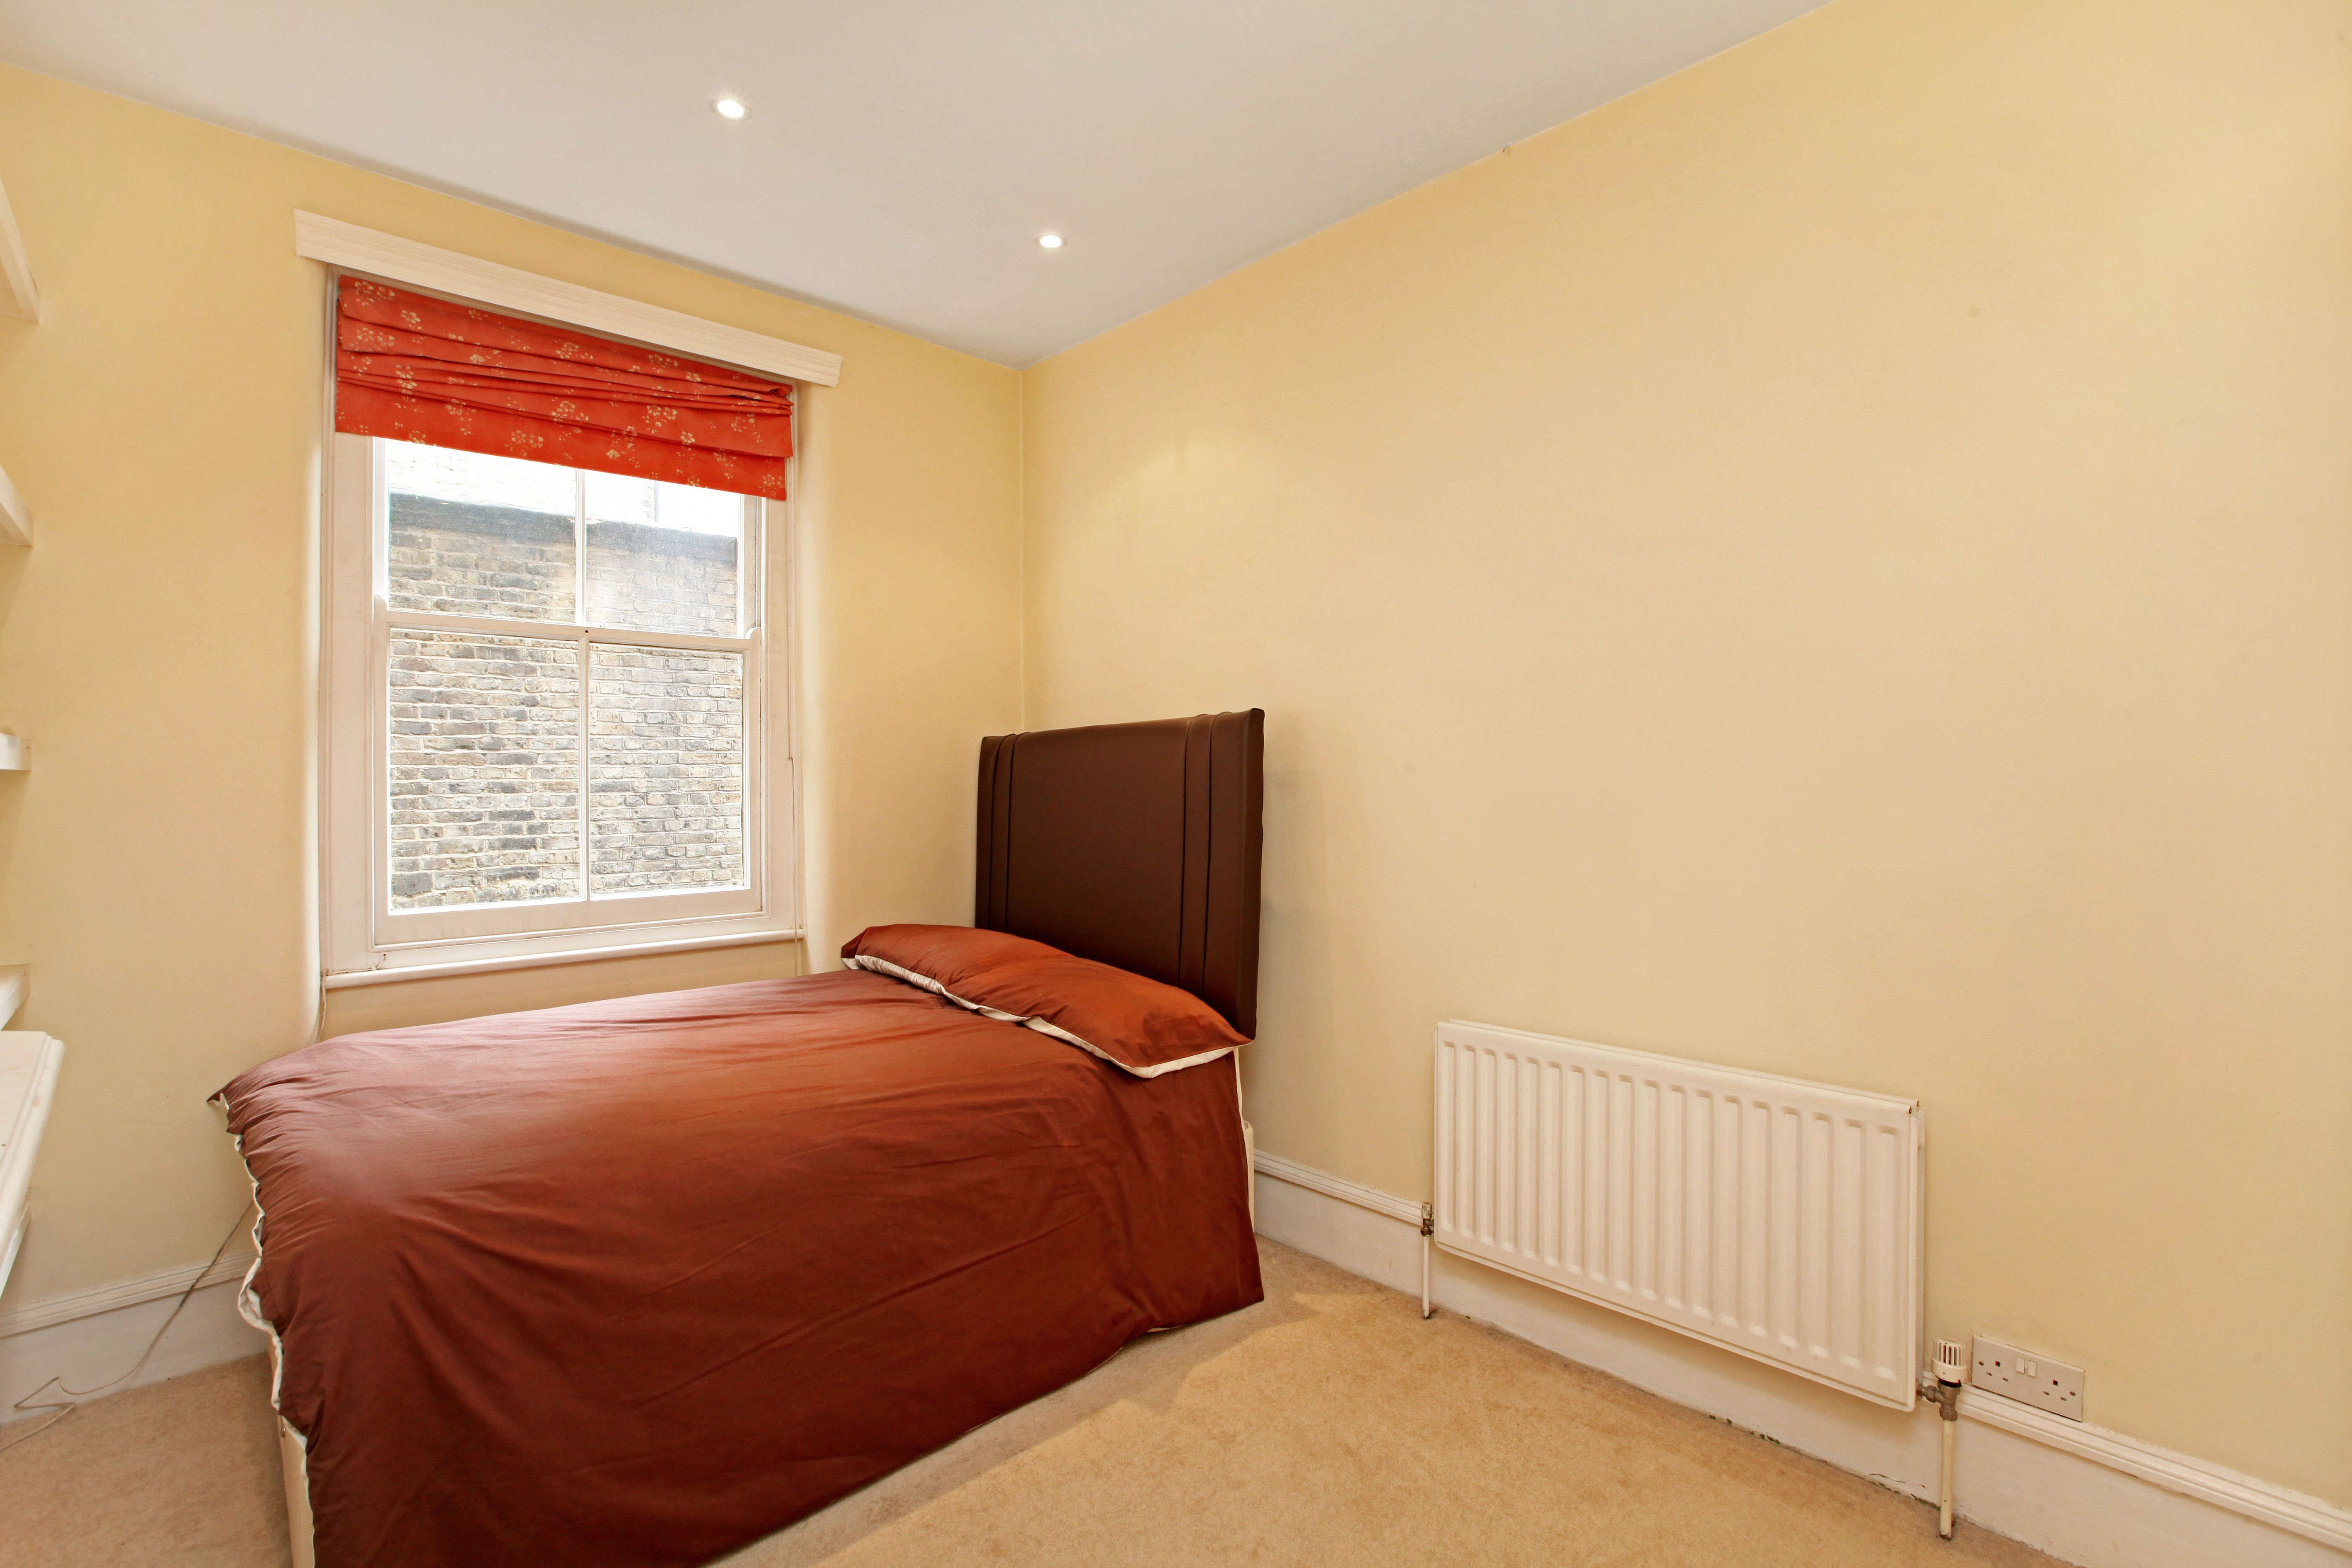 Best 2 Bed Flat To Rent Lillie Road London Sw6 7Pq With Pictures